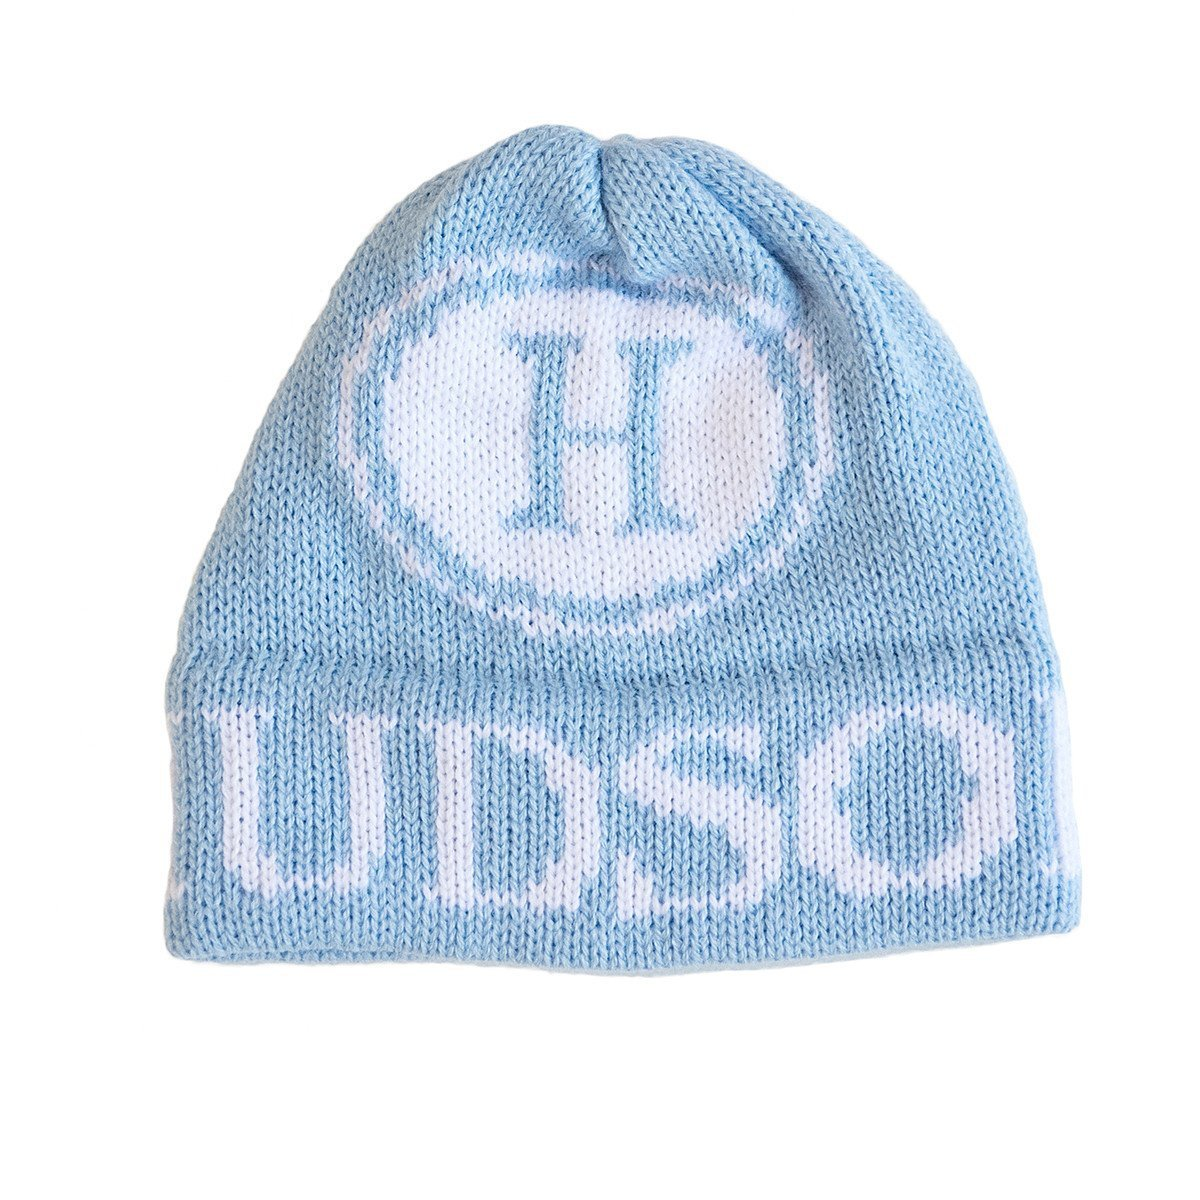 Initial Stamp Personalized Knit Hat-Hats-Jack and Jill Boutique